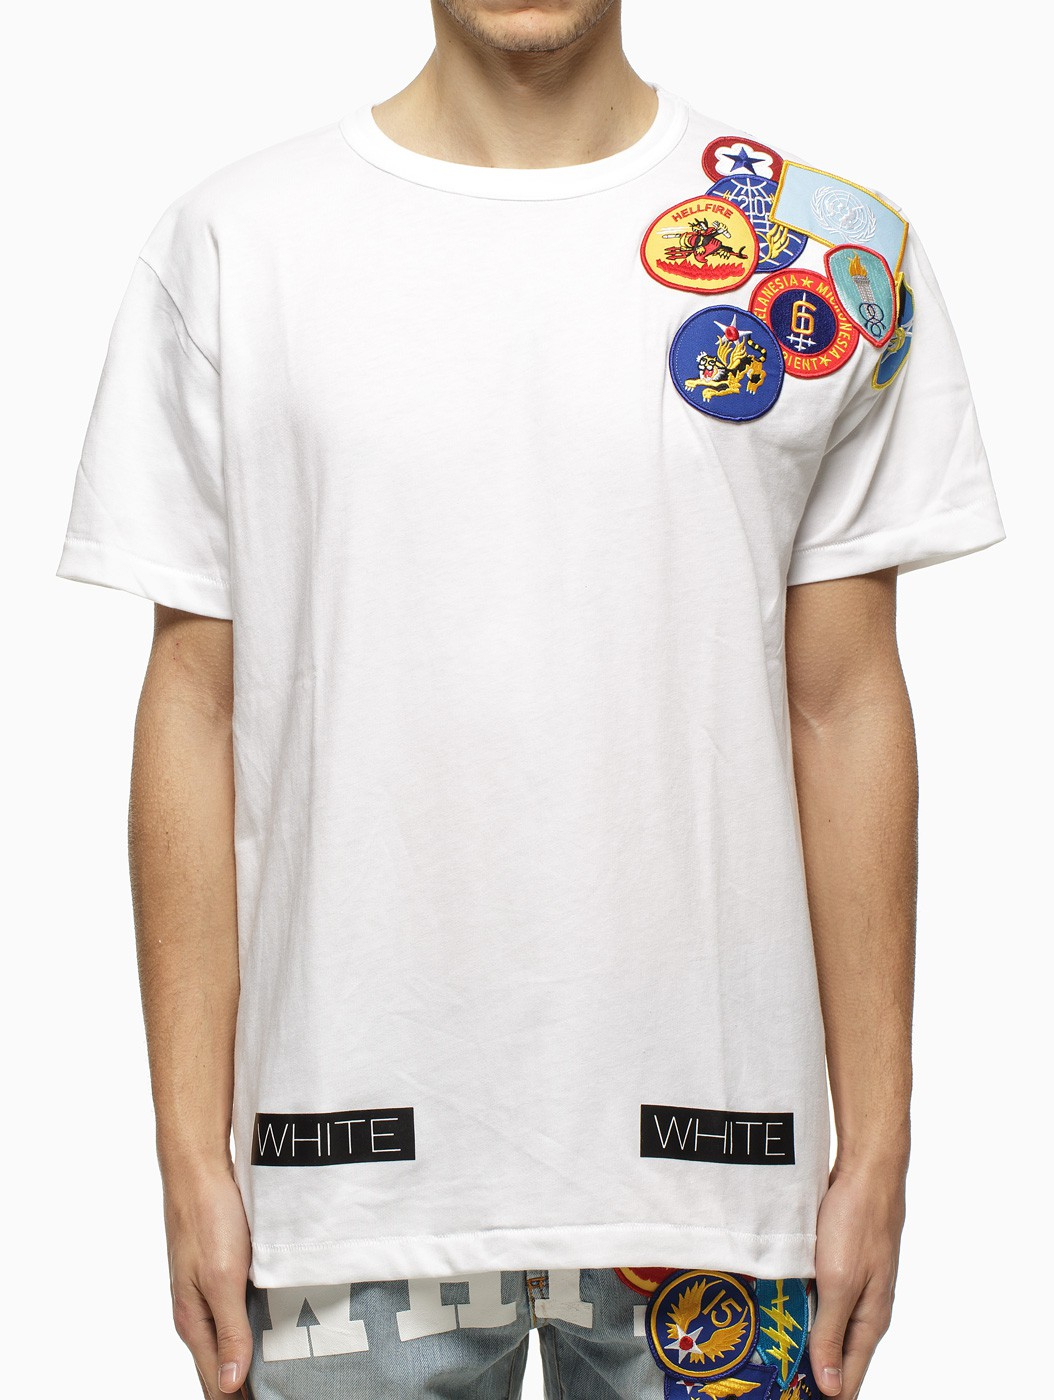 The Patches T-Shirt For Men